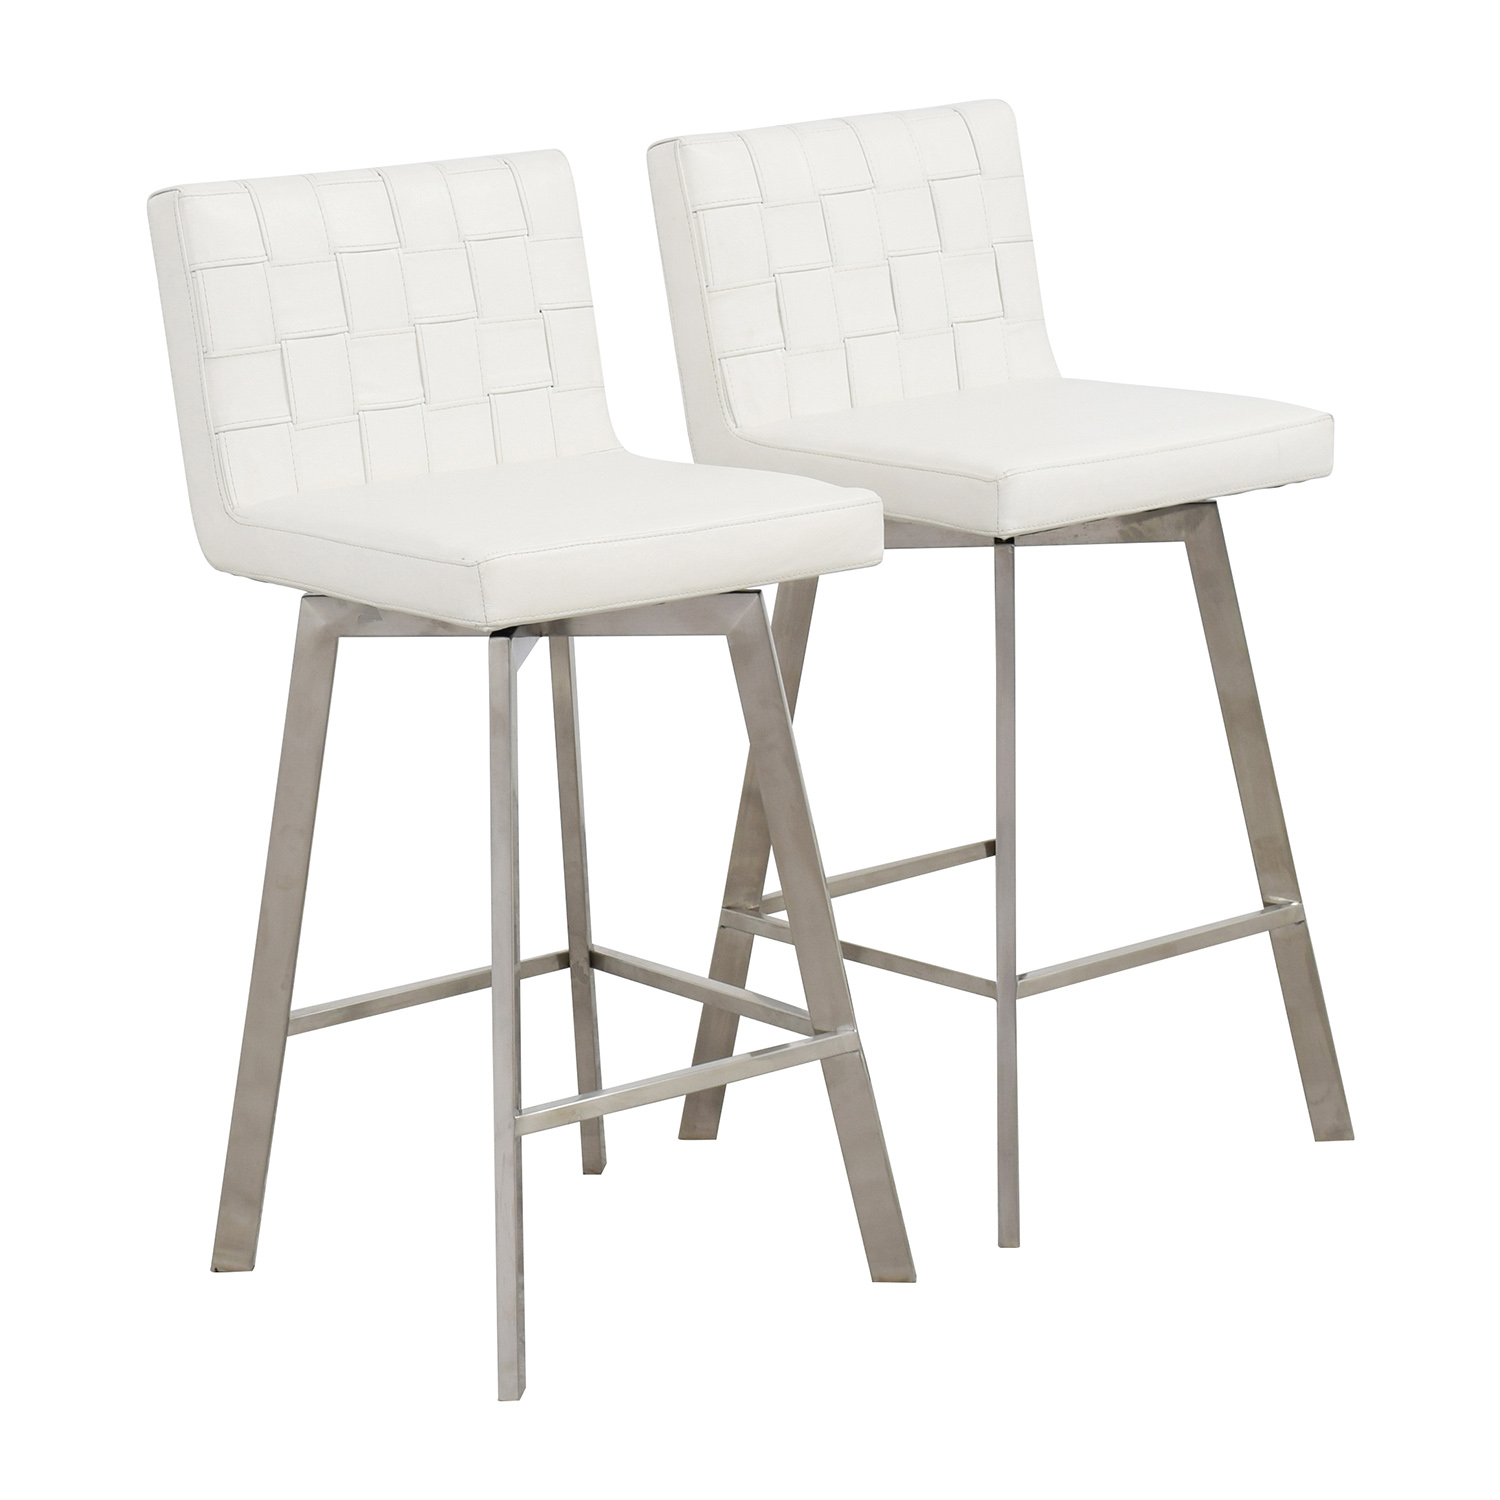 White Bar Chairs ($10)